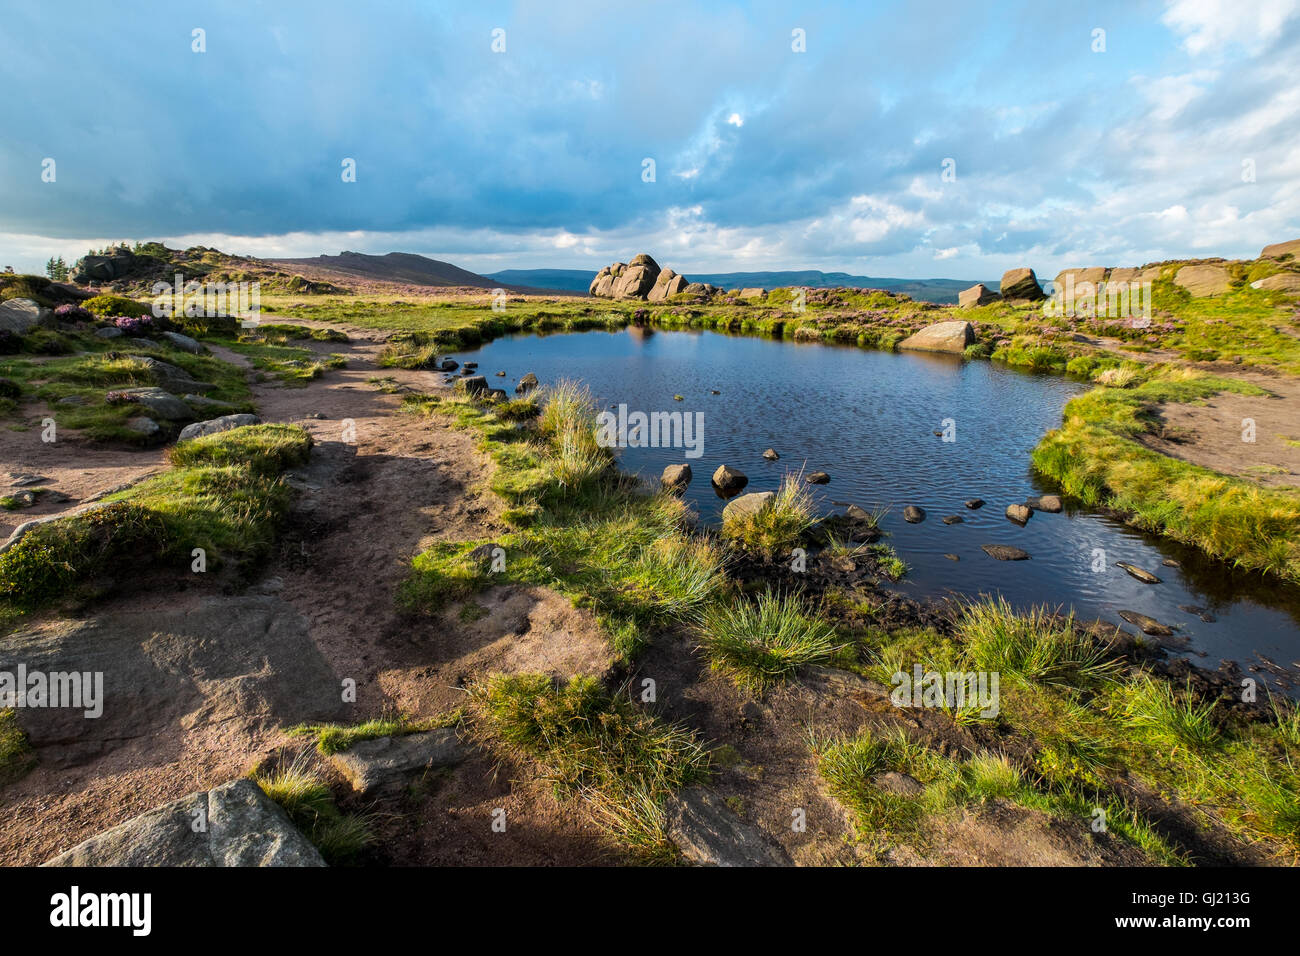 Doxeys Pool on the Roaches ridge in the Peak District National Park - Stock Image